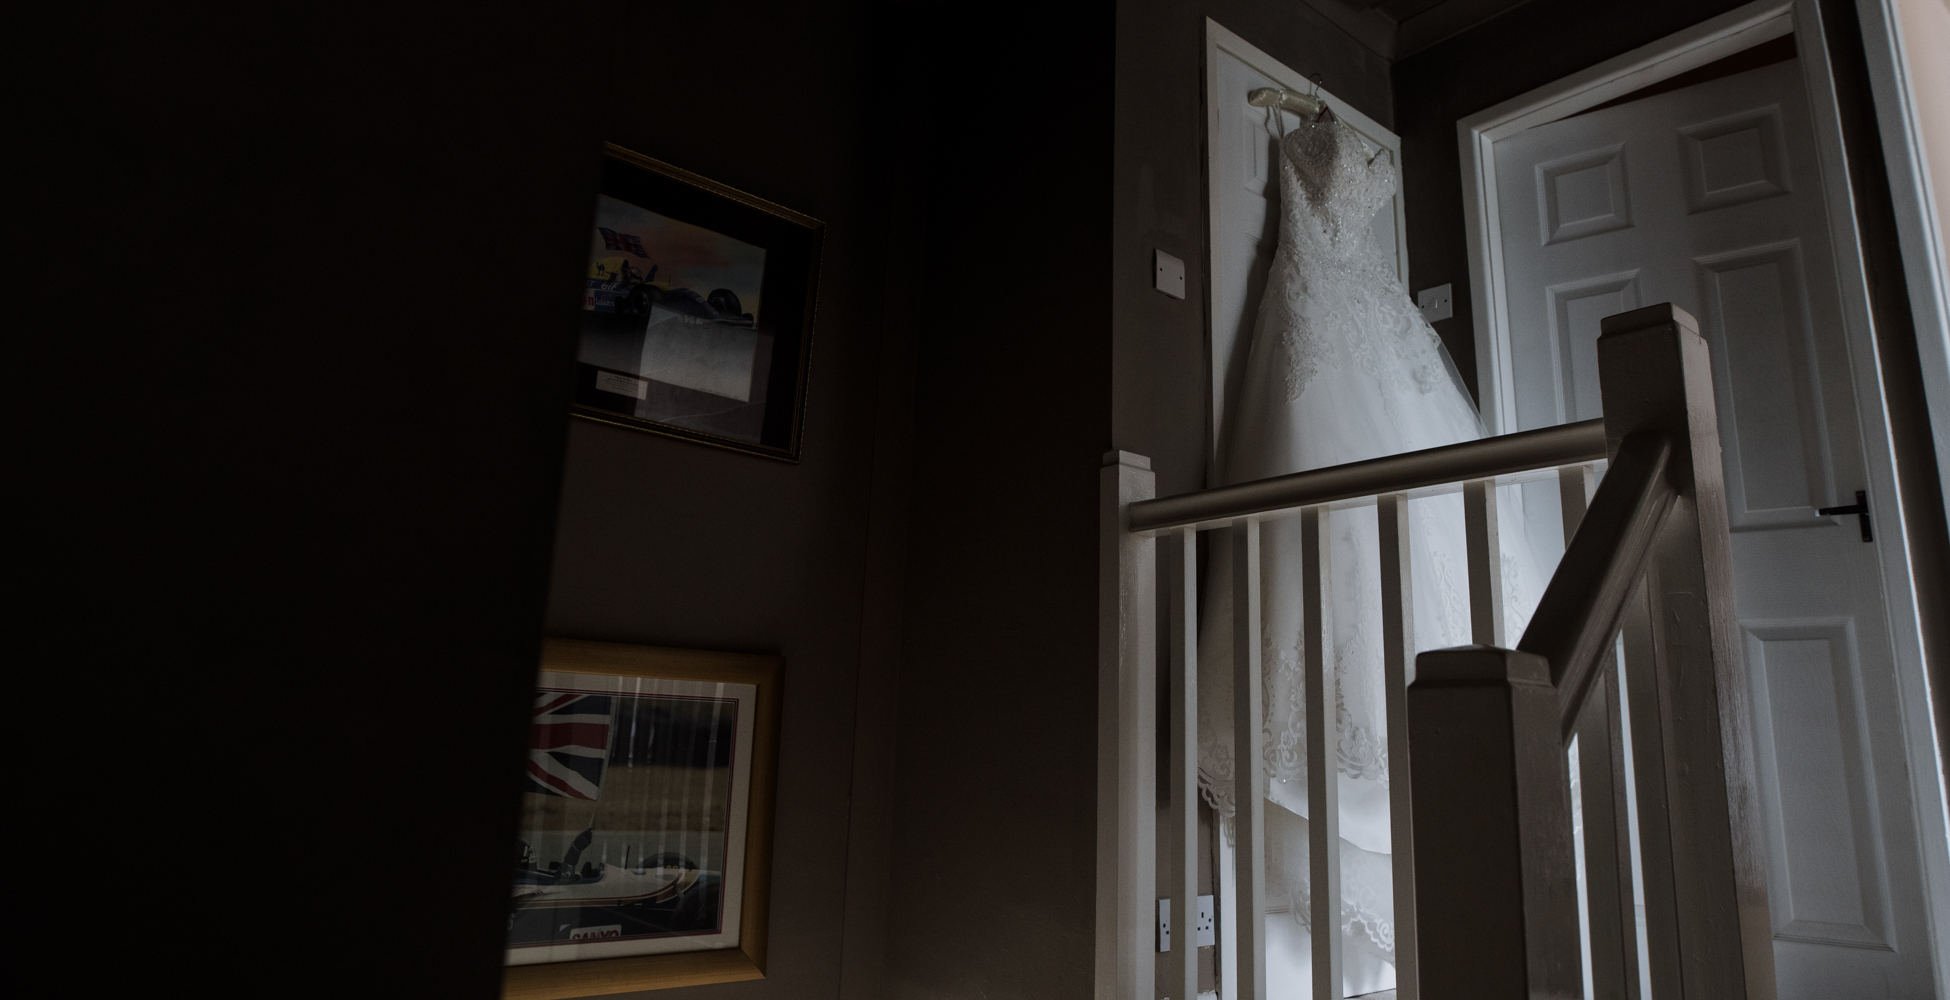 Wide angle photo of the wedding dress at the top of the stairs